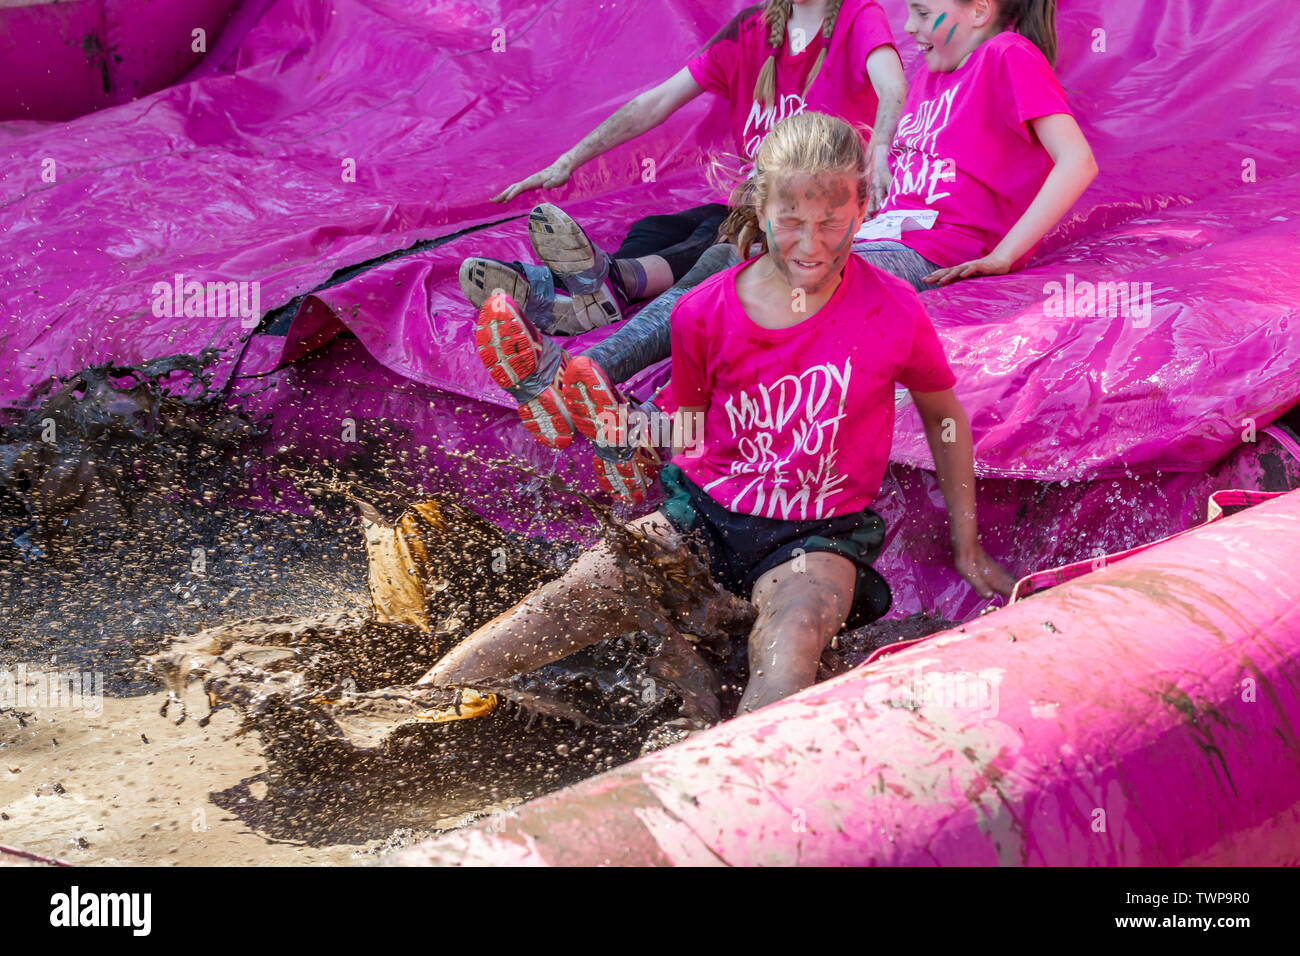 Abington Park, Northampton, U.K. 22nd June 2019. Race for Life Pretty Muddy, raising funds for Cancer Research, a 5km obstacle route which meanders through the very scenic Abington Park, over 1700 people of all ages taking part this morning  in 15 mins waves raising £164,400 for Cancer Research. Credit: Keith J Smith./Alamy Live News. - Stock Image